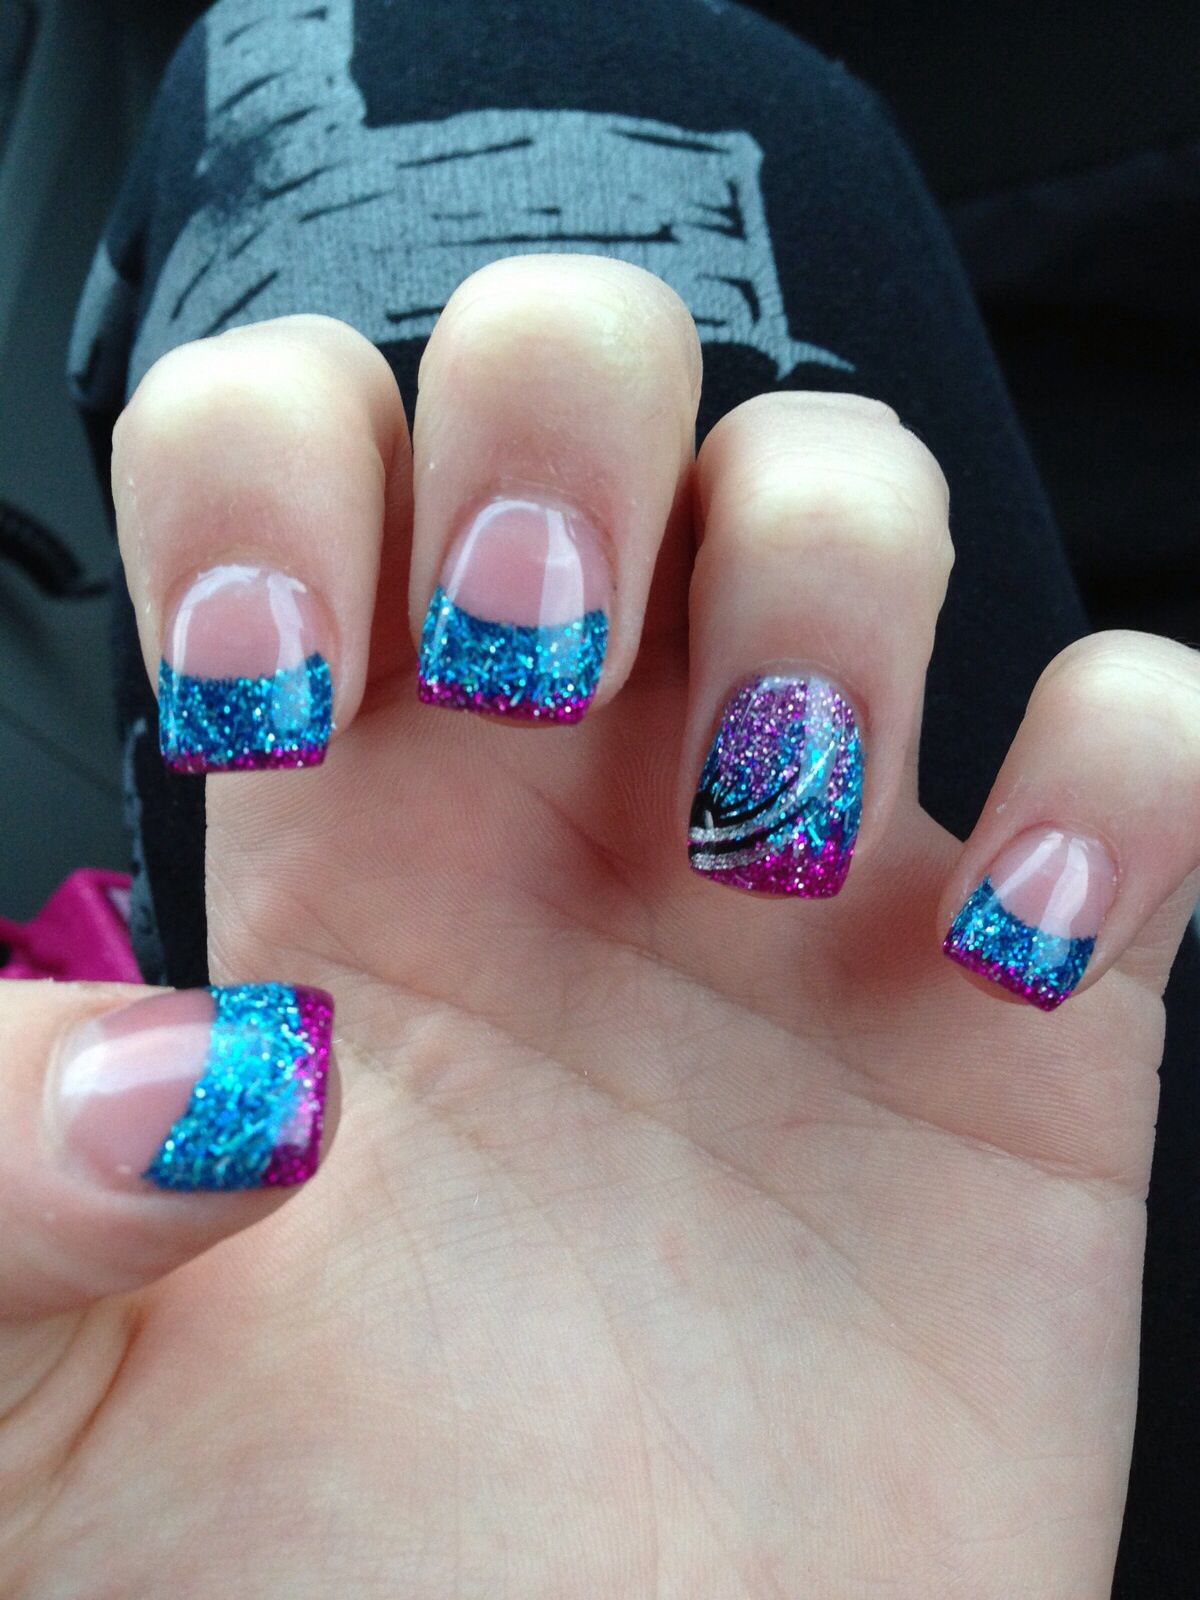 Perfect for my purple and blue wedding! | Wedding Day Beautification ...